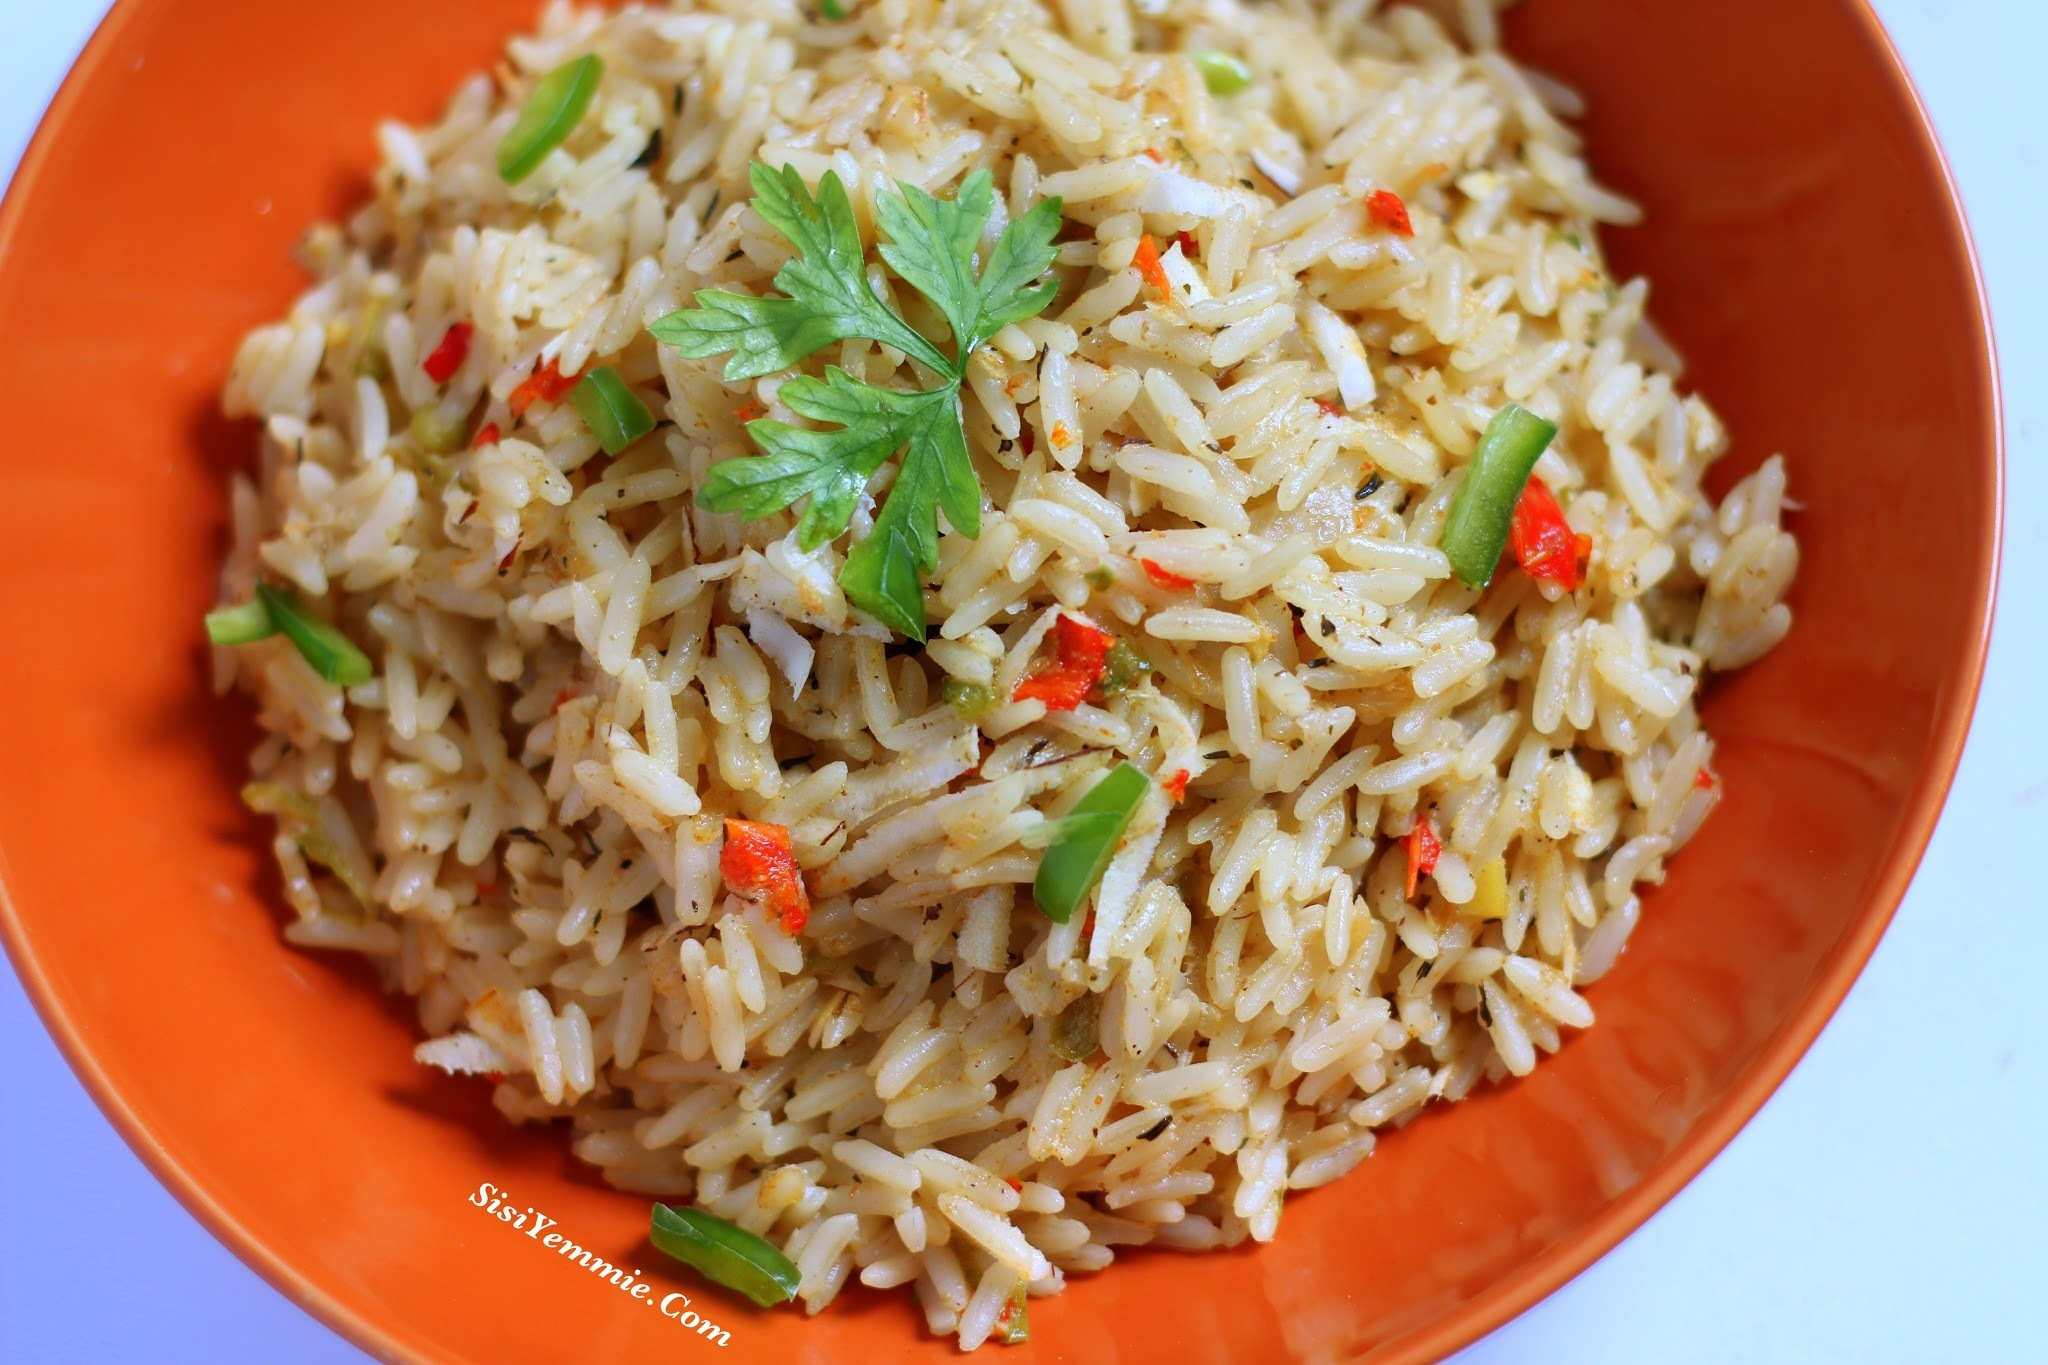 NIGERIAN COCONUT RICE RECIPE